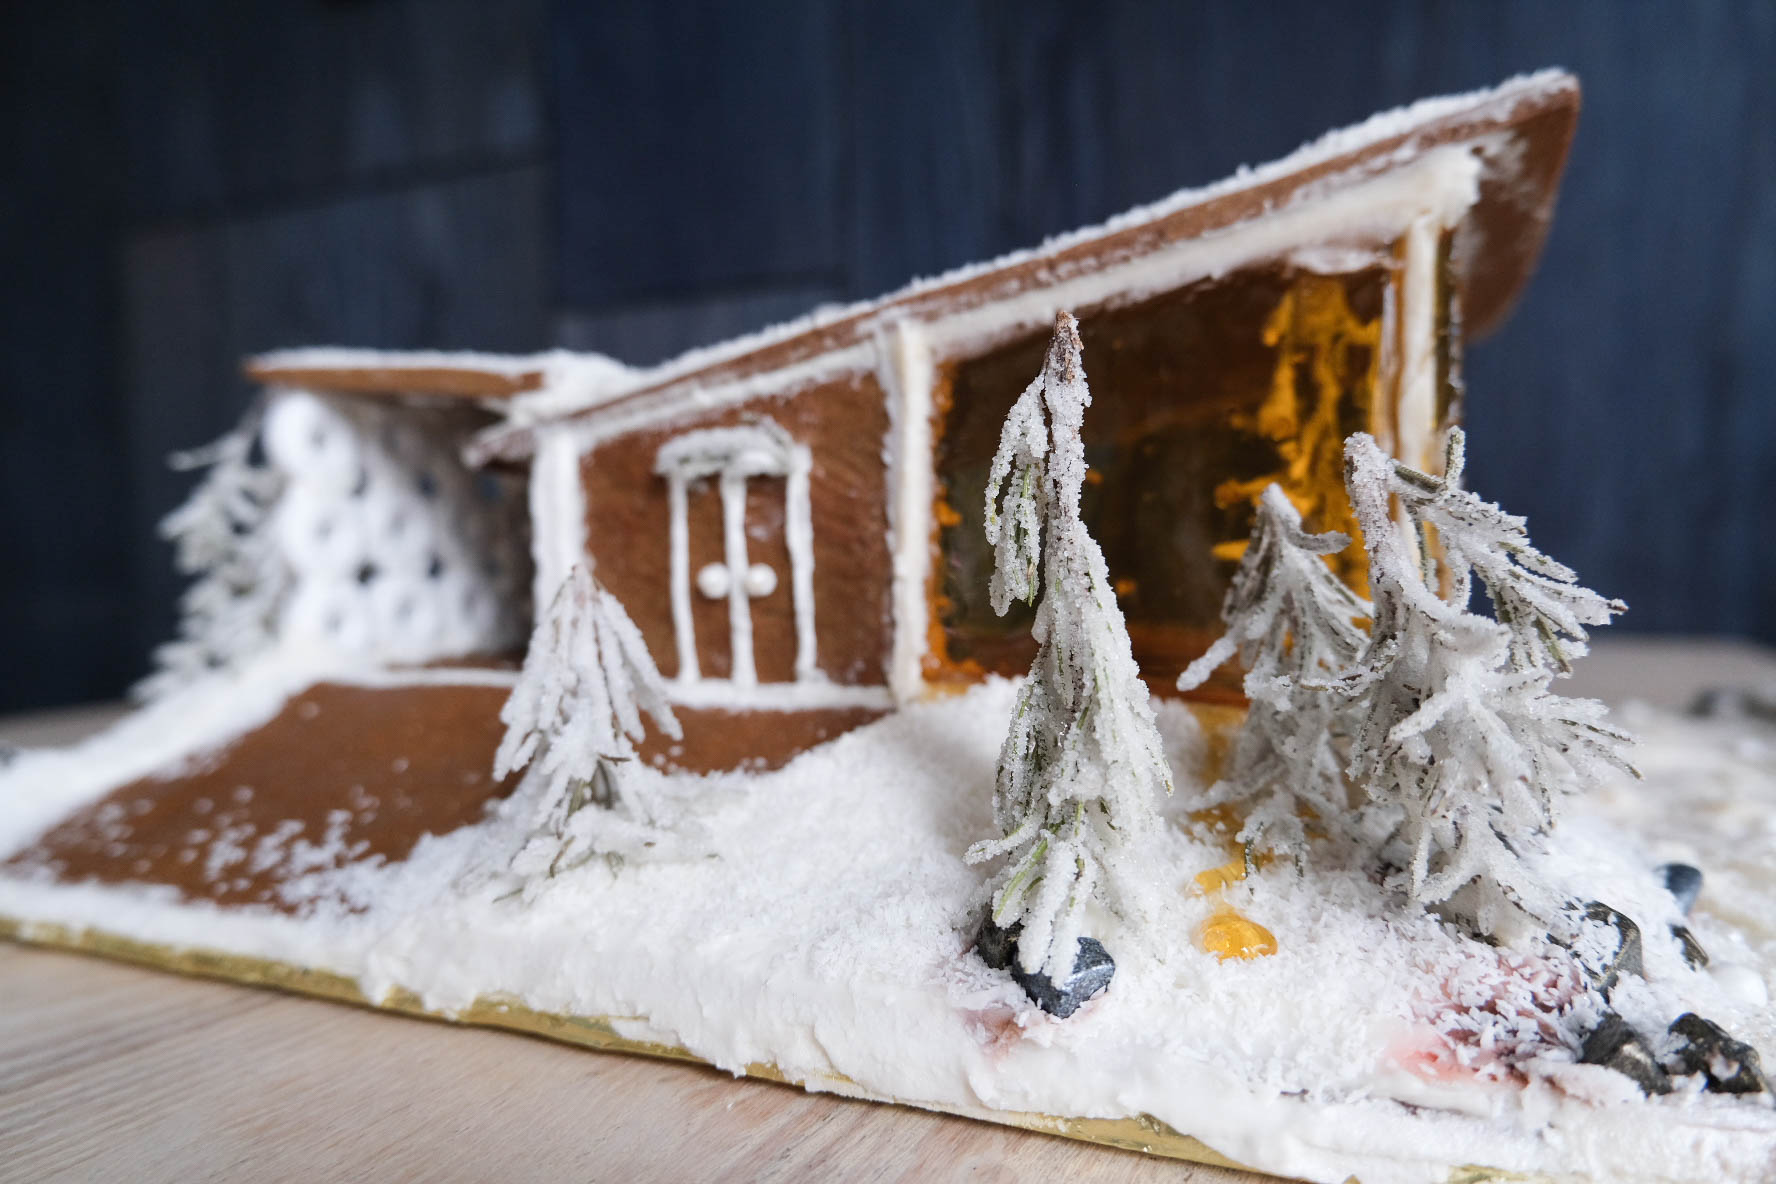 Midcentury modern gingerbread house with slanted roof.